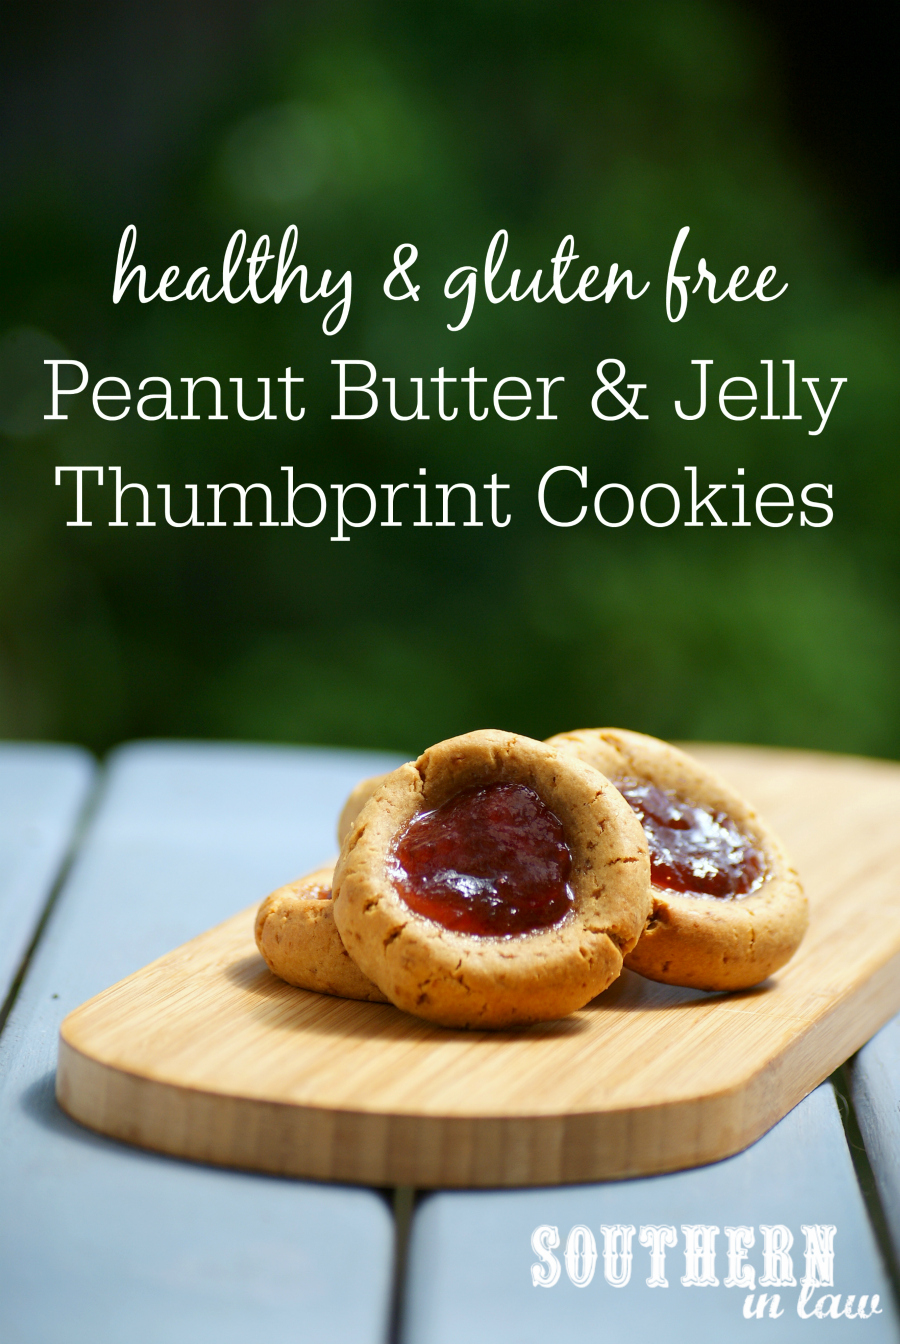 Peanut Butter and Jelly Thumbprint Cookies Recipe - PB&J Thumbprint ...